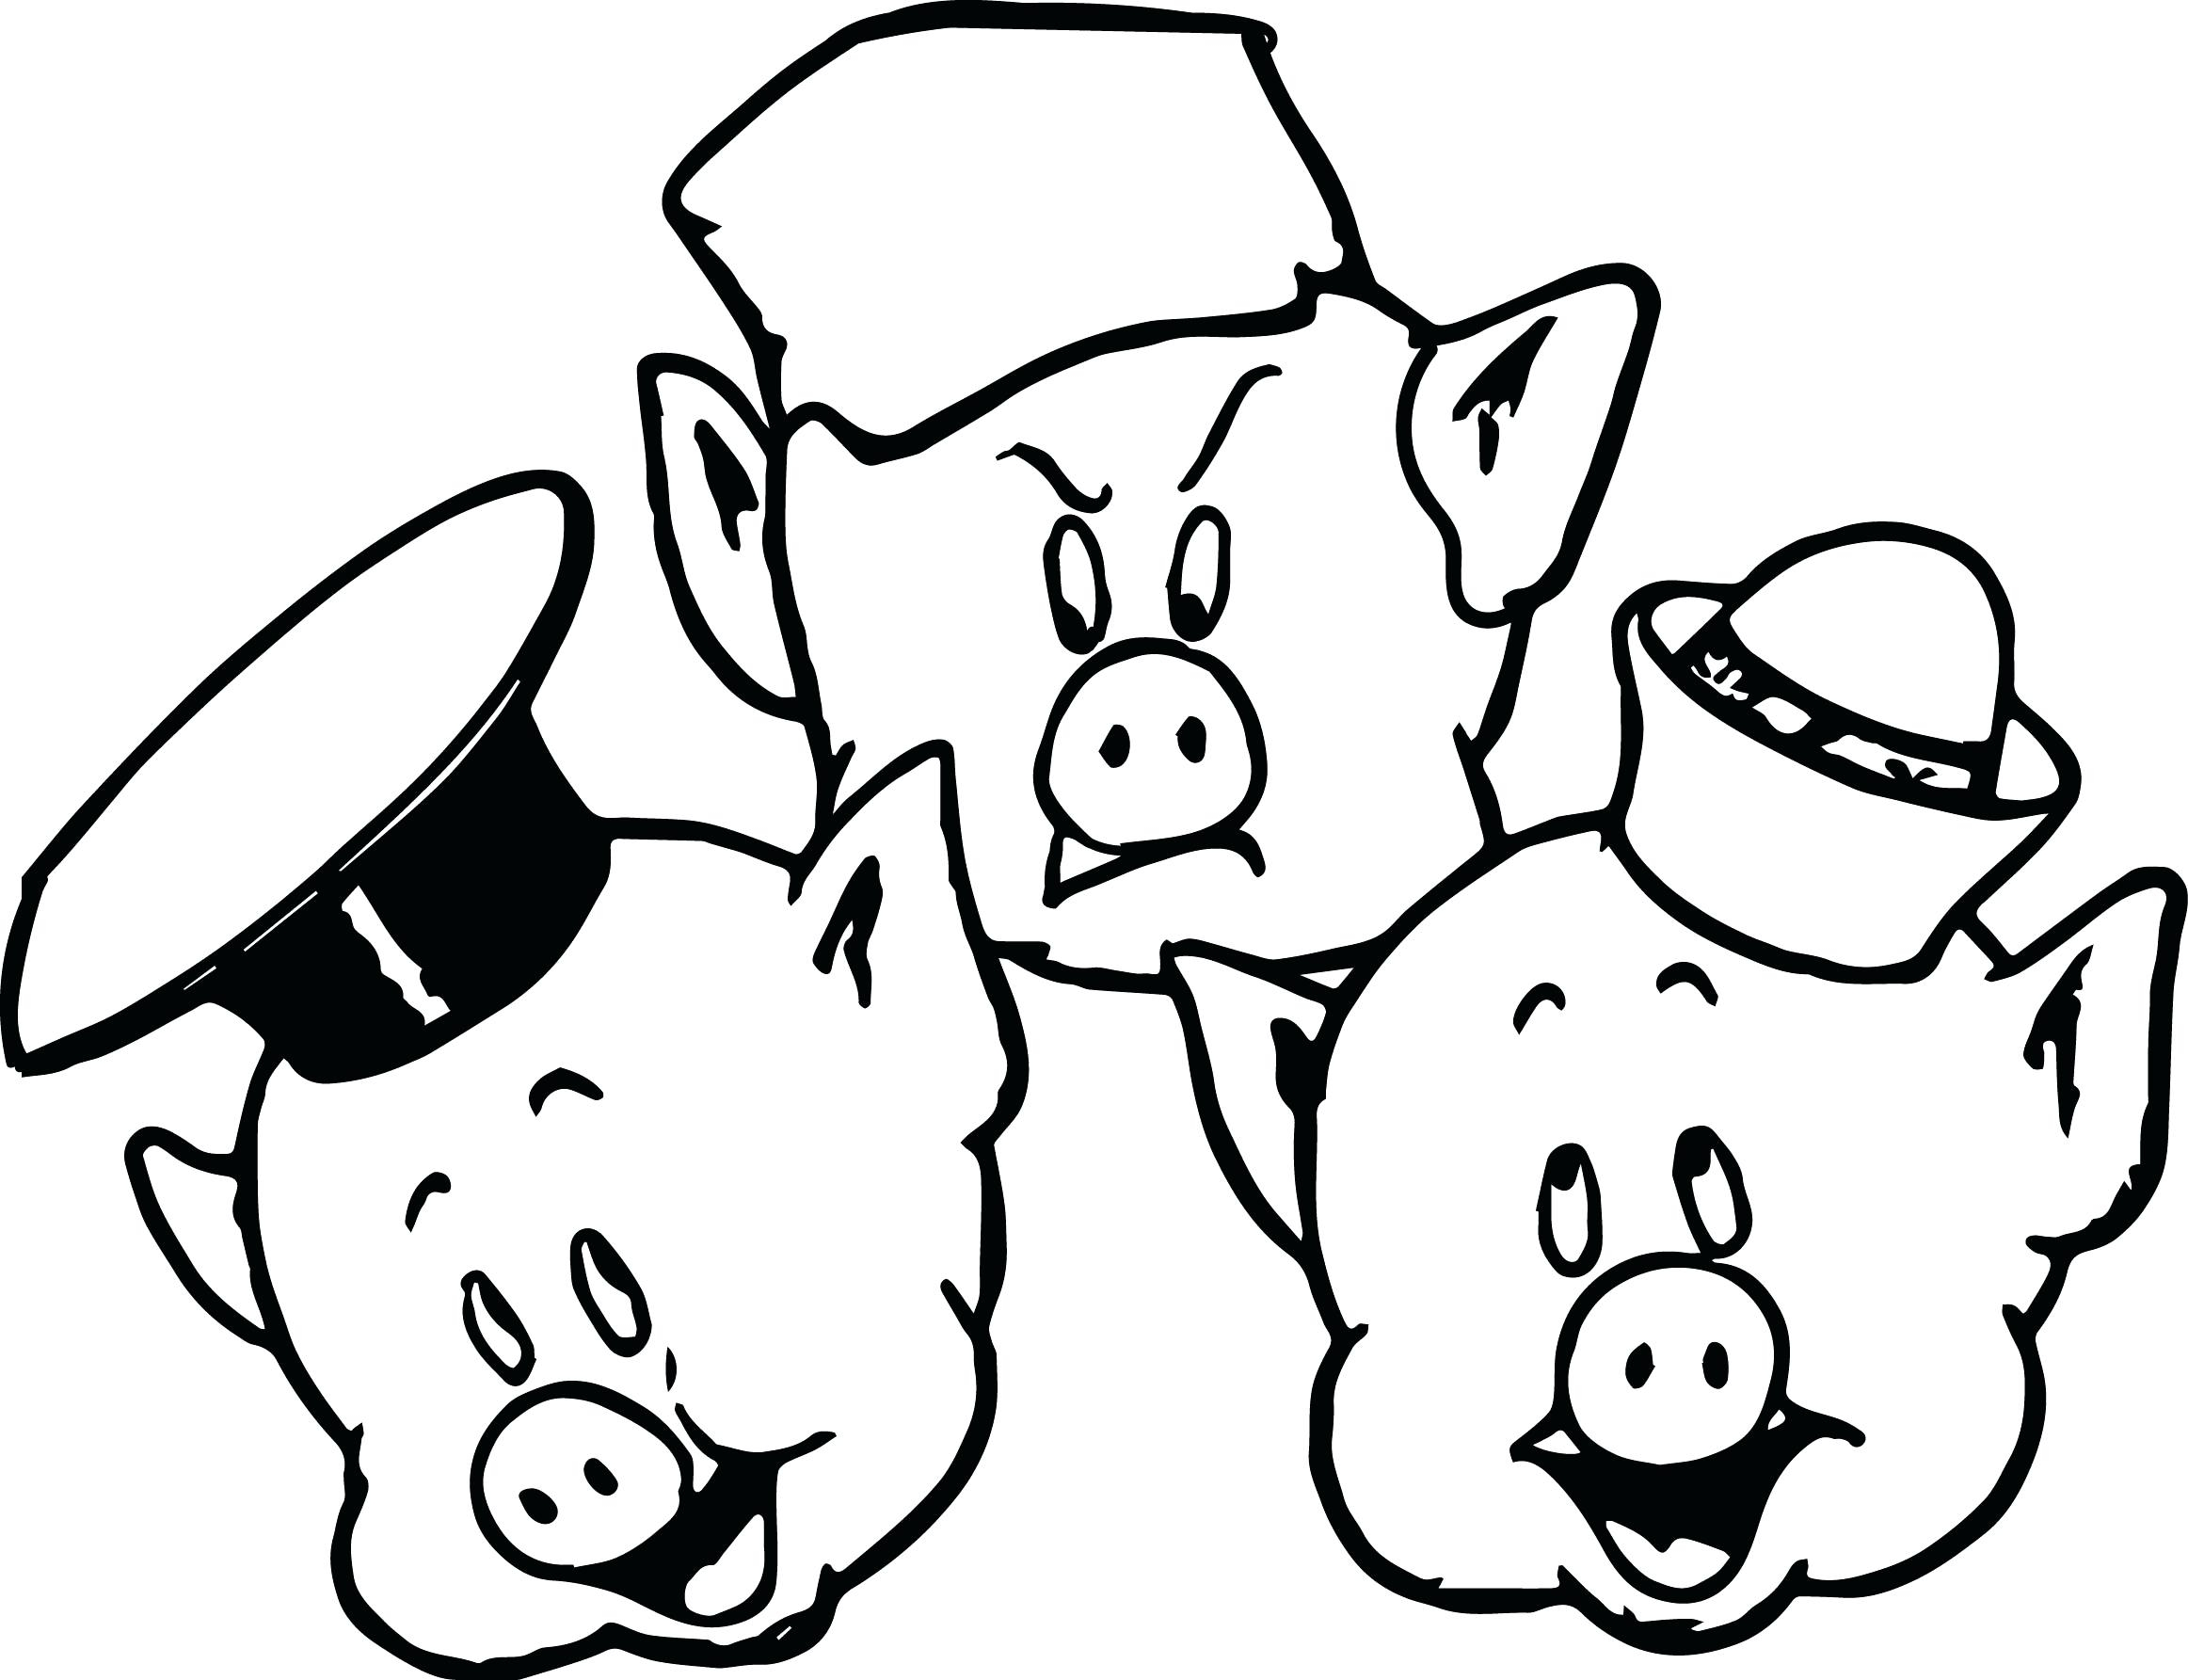 2325x1785 New Cartoon Pig Coloring Pages Gallery Printable Coloring Sheet